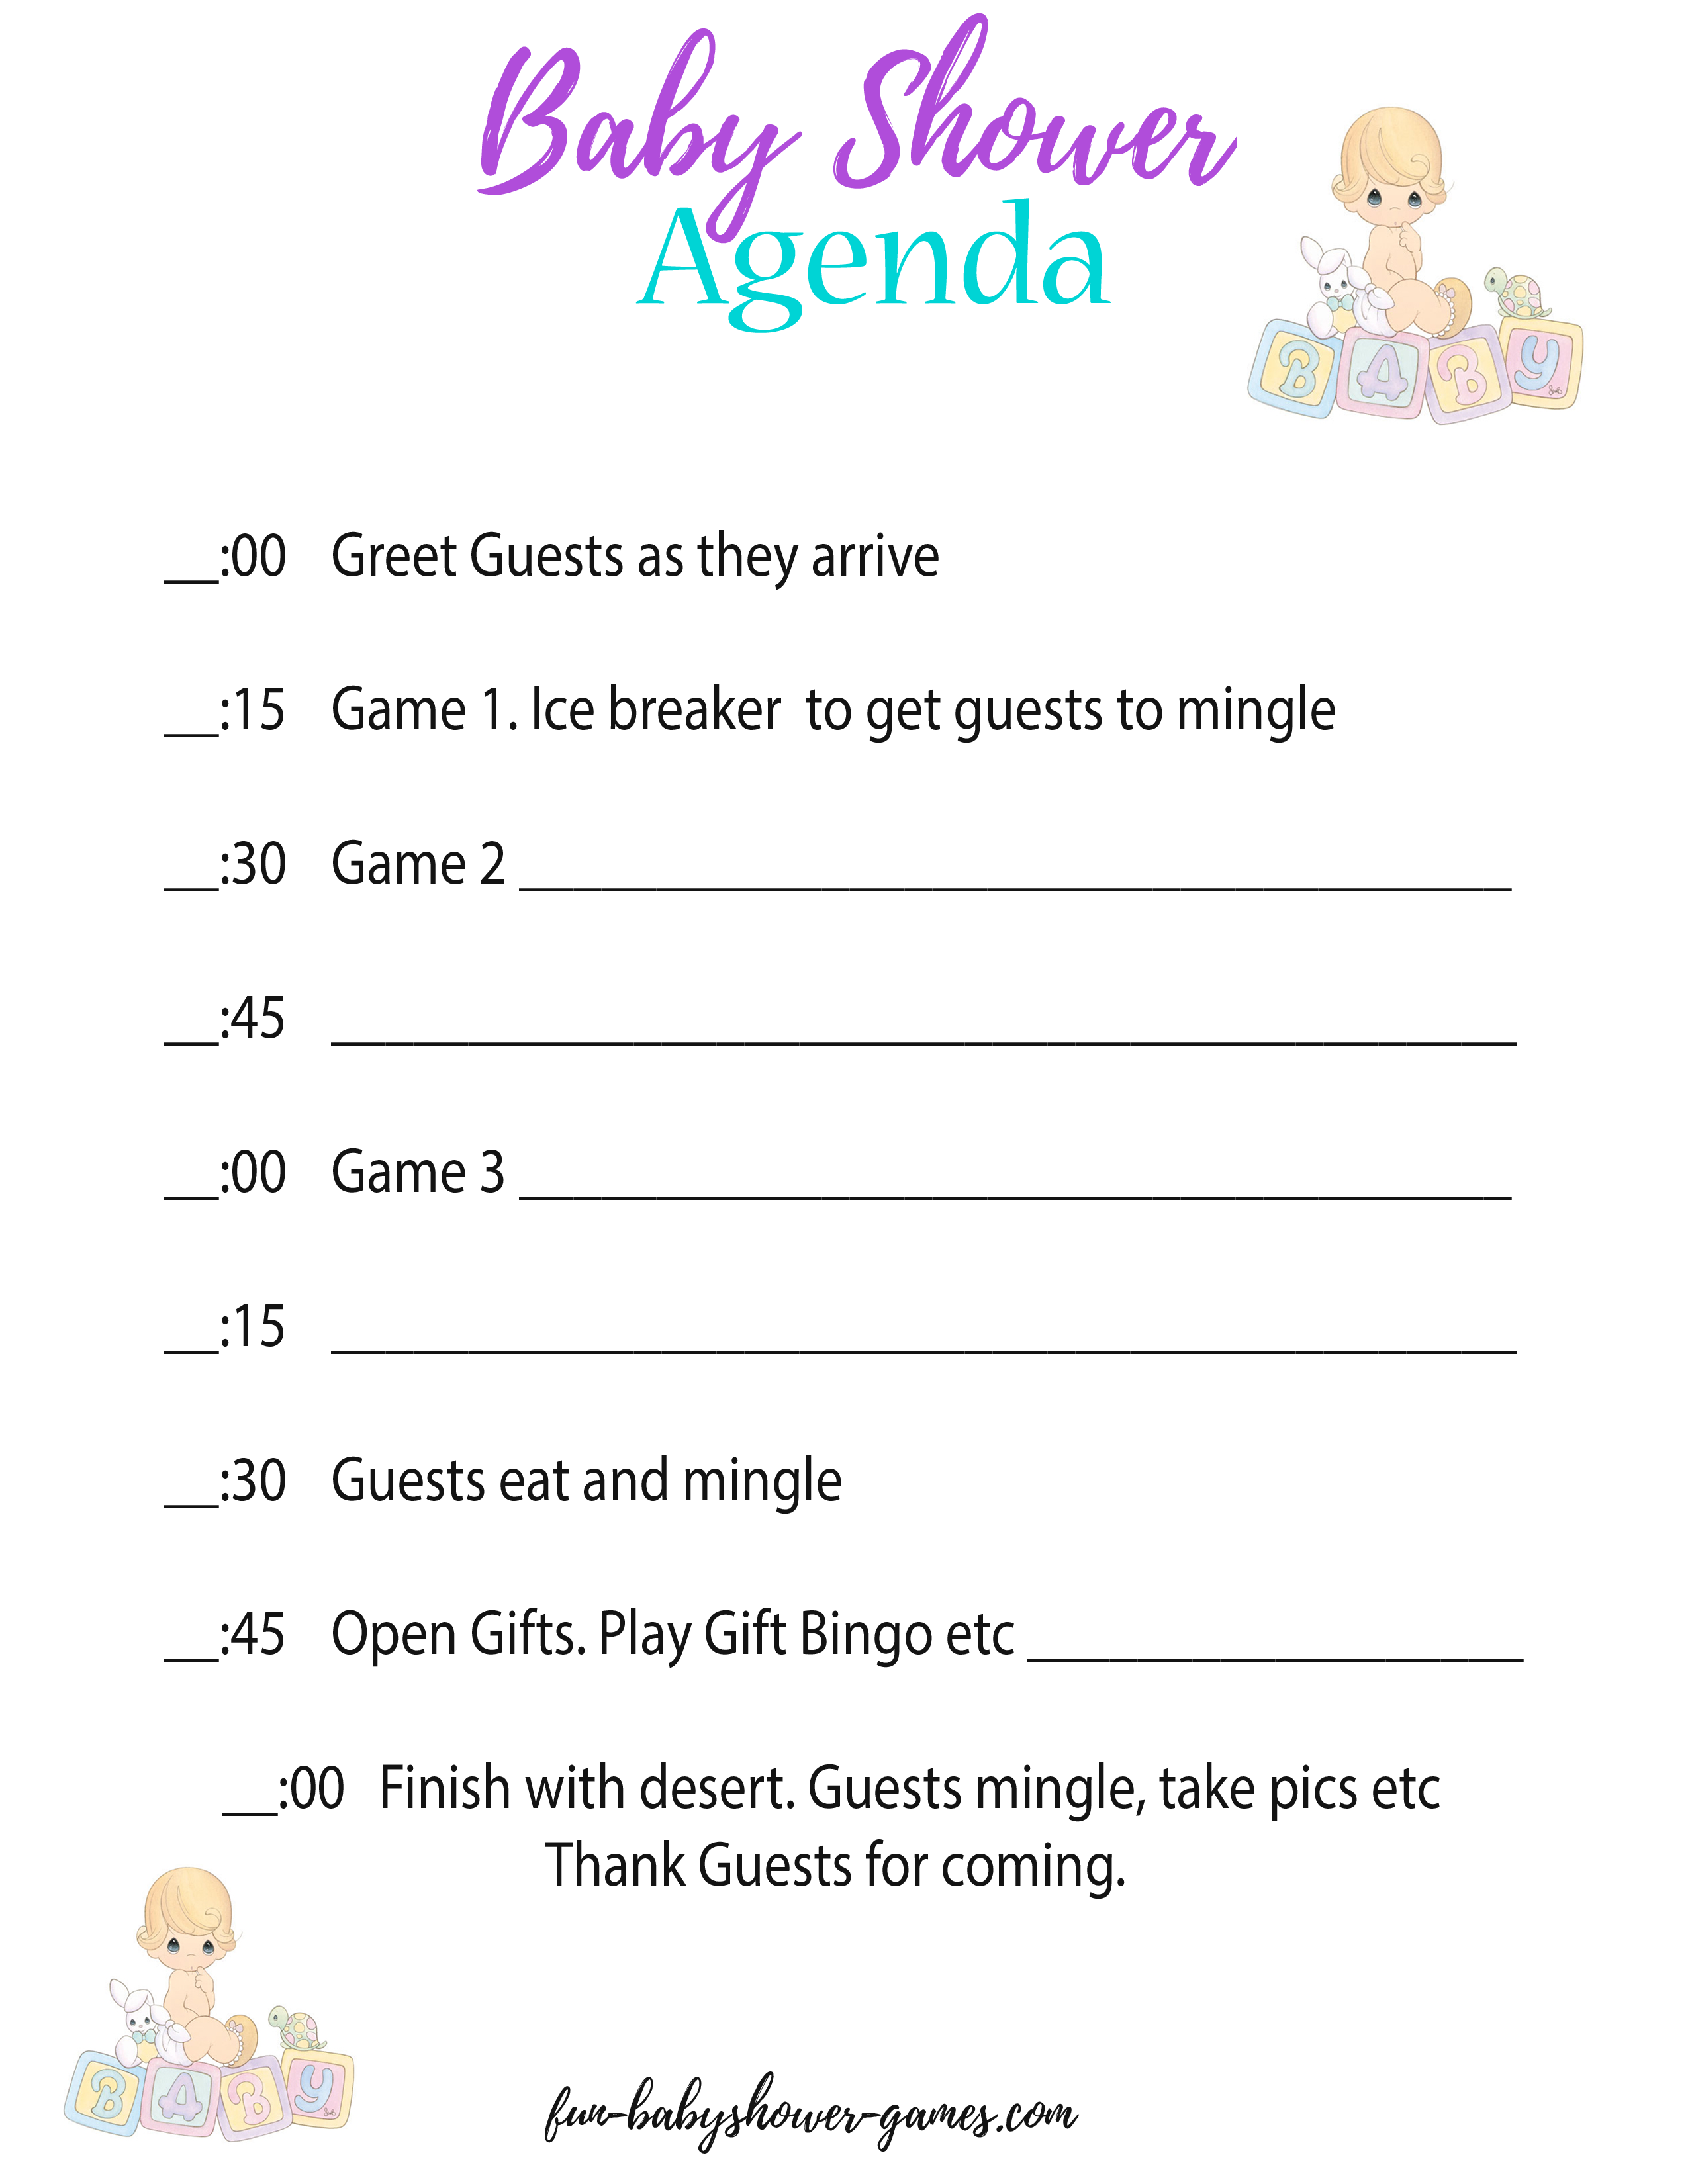 A Baby Shower Agenda Will Help Keep Everything Running According To Plan During The Baby Shower Baby Shower Program Baby Shower Baby Shower Planning Checklist